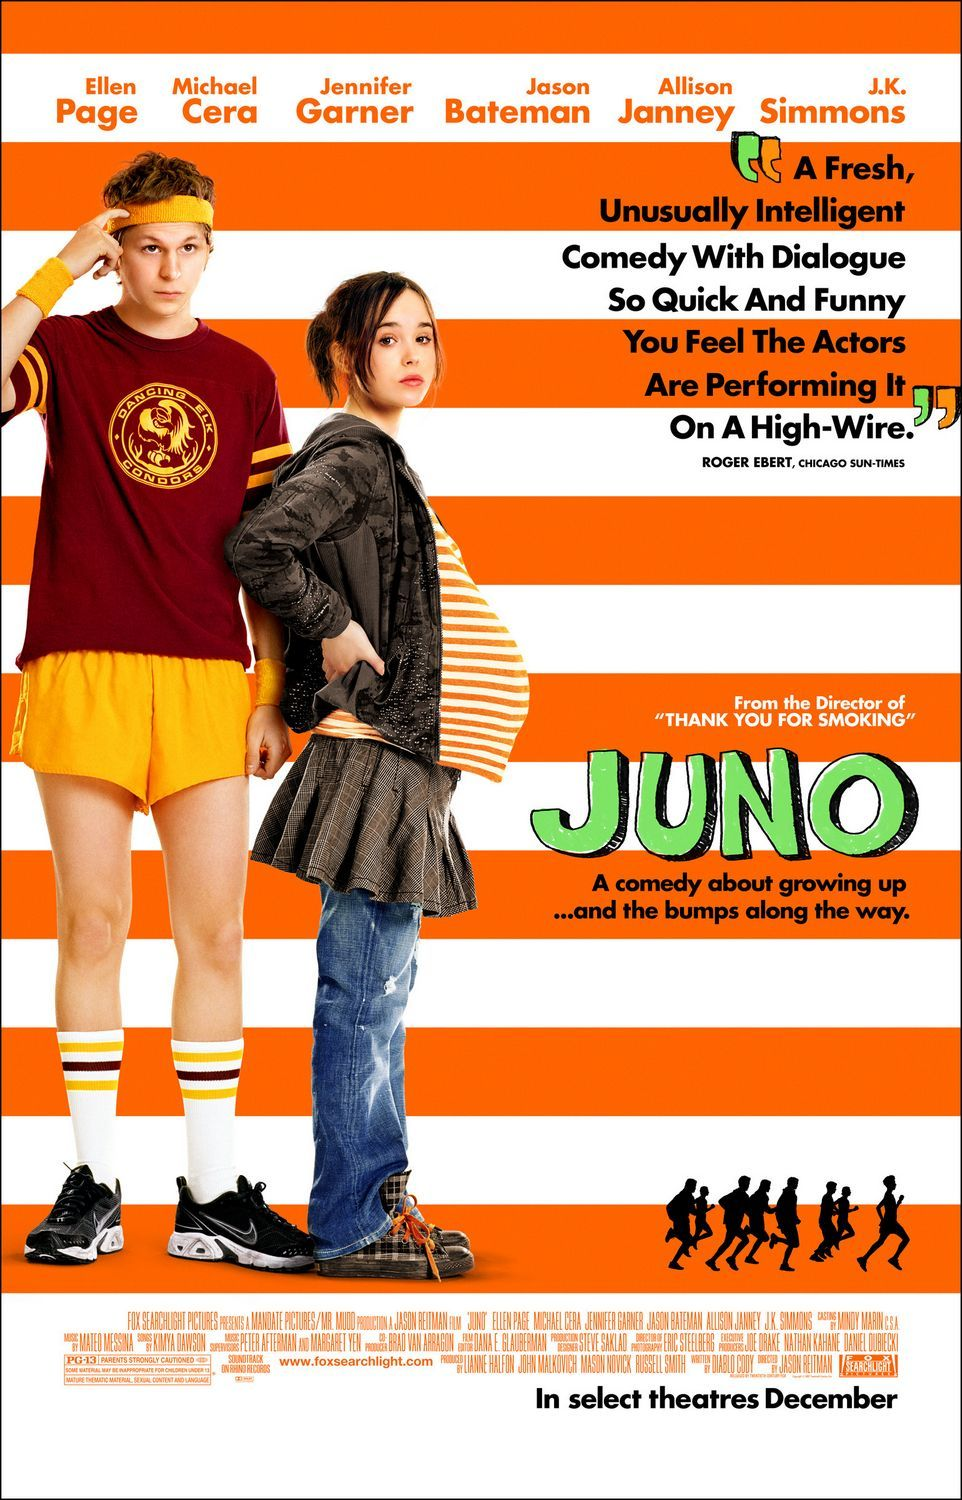 Juno, Hillarious and cool auto stuff and mixing, also Ellen Page nominated for best actress